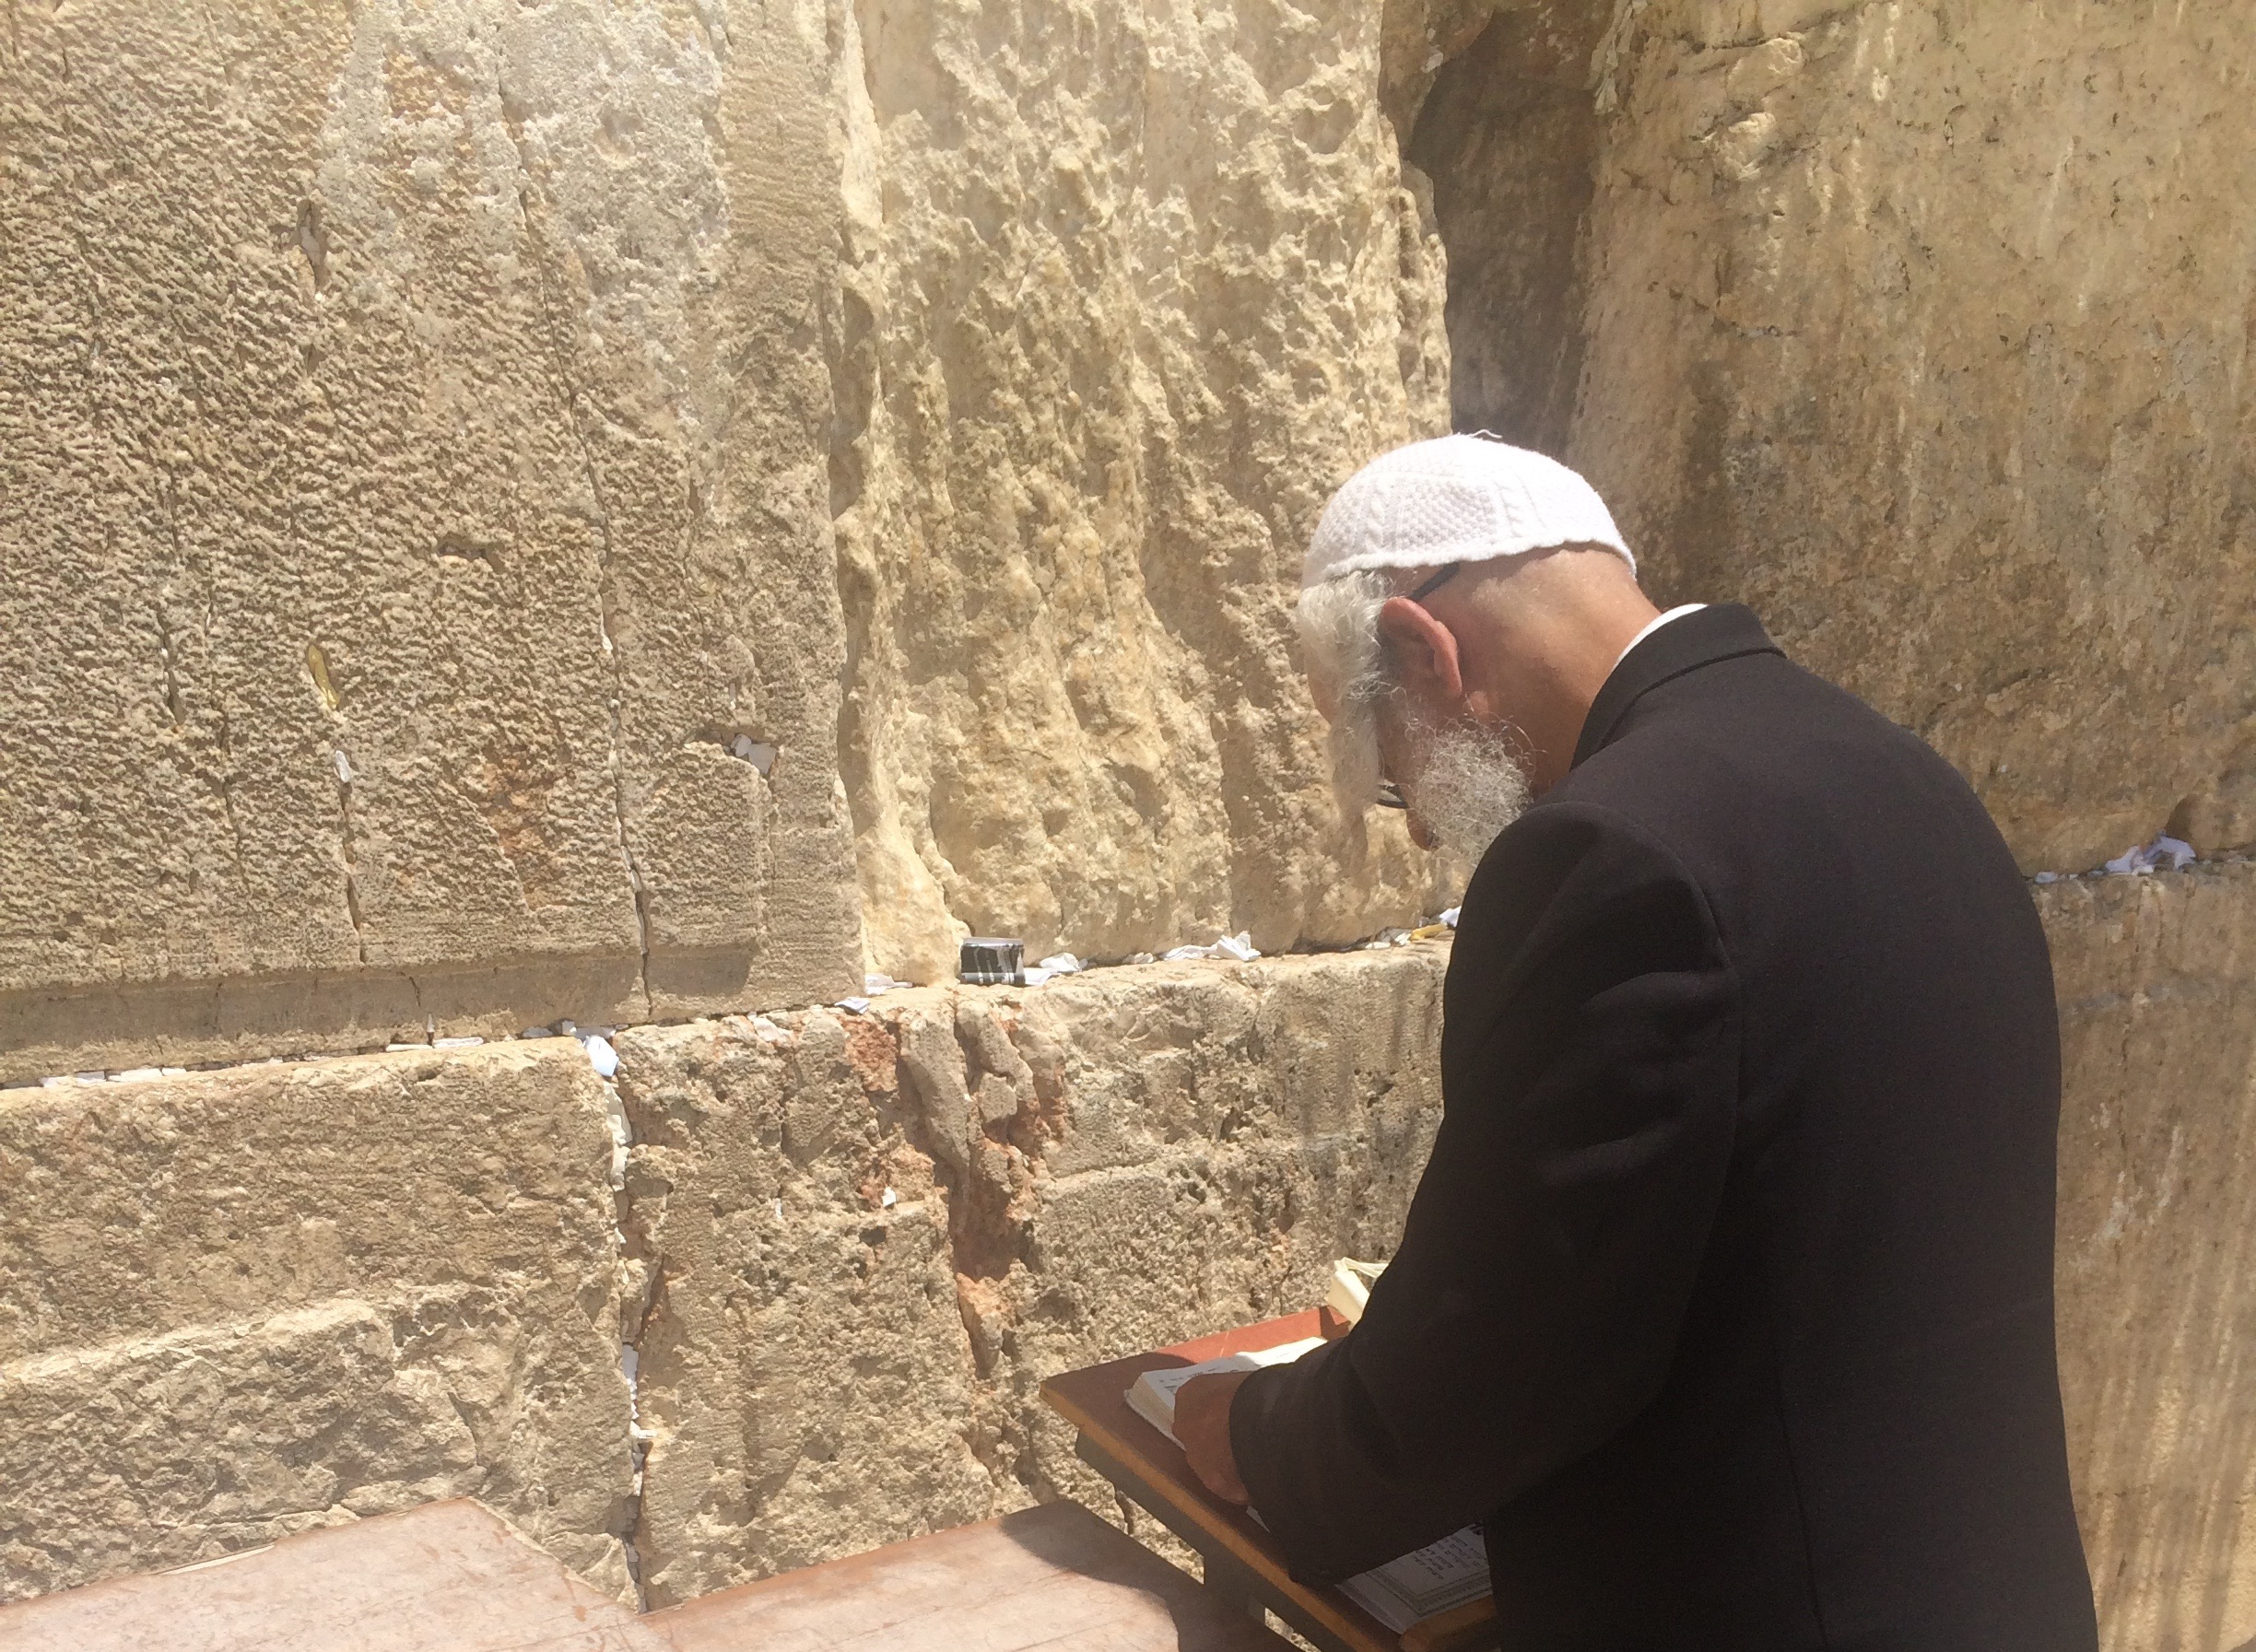 A pious Jew prays at the Western Wall. A few minutes after I took this picture, I placed my face against the hot stone and asked G-d to watch over the soul of our beloved son Ariel Chaim, z'tl.